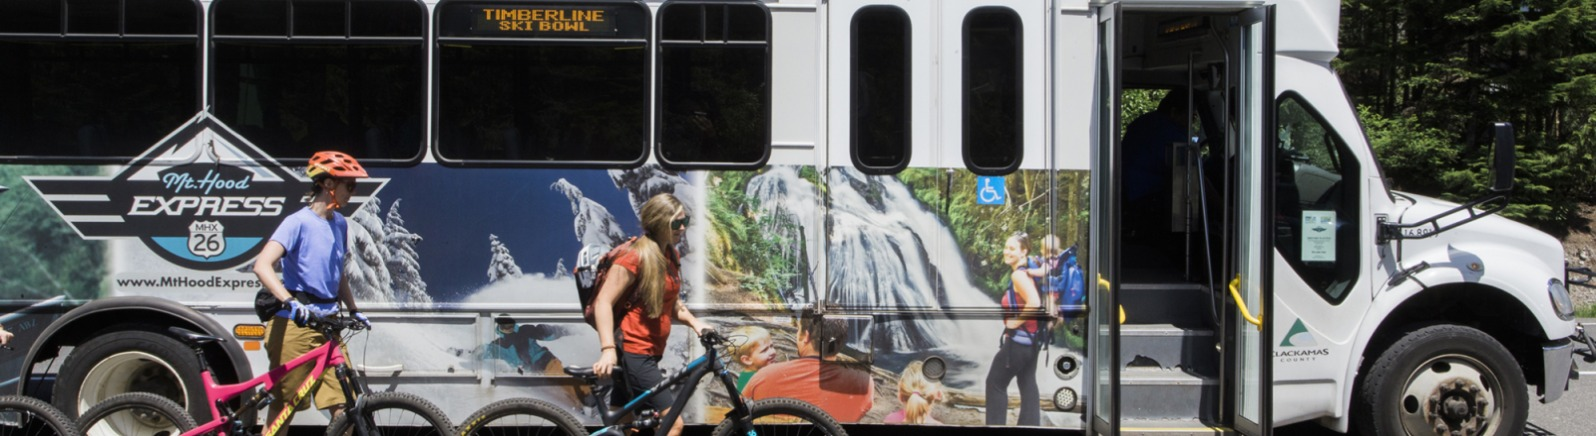 Boarding Mt. Hood Express with mountain bikes